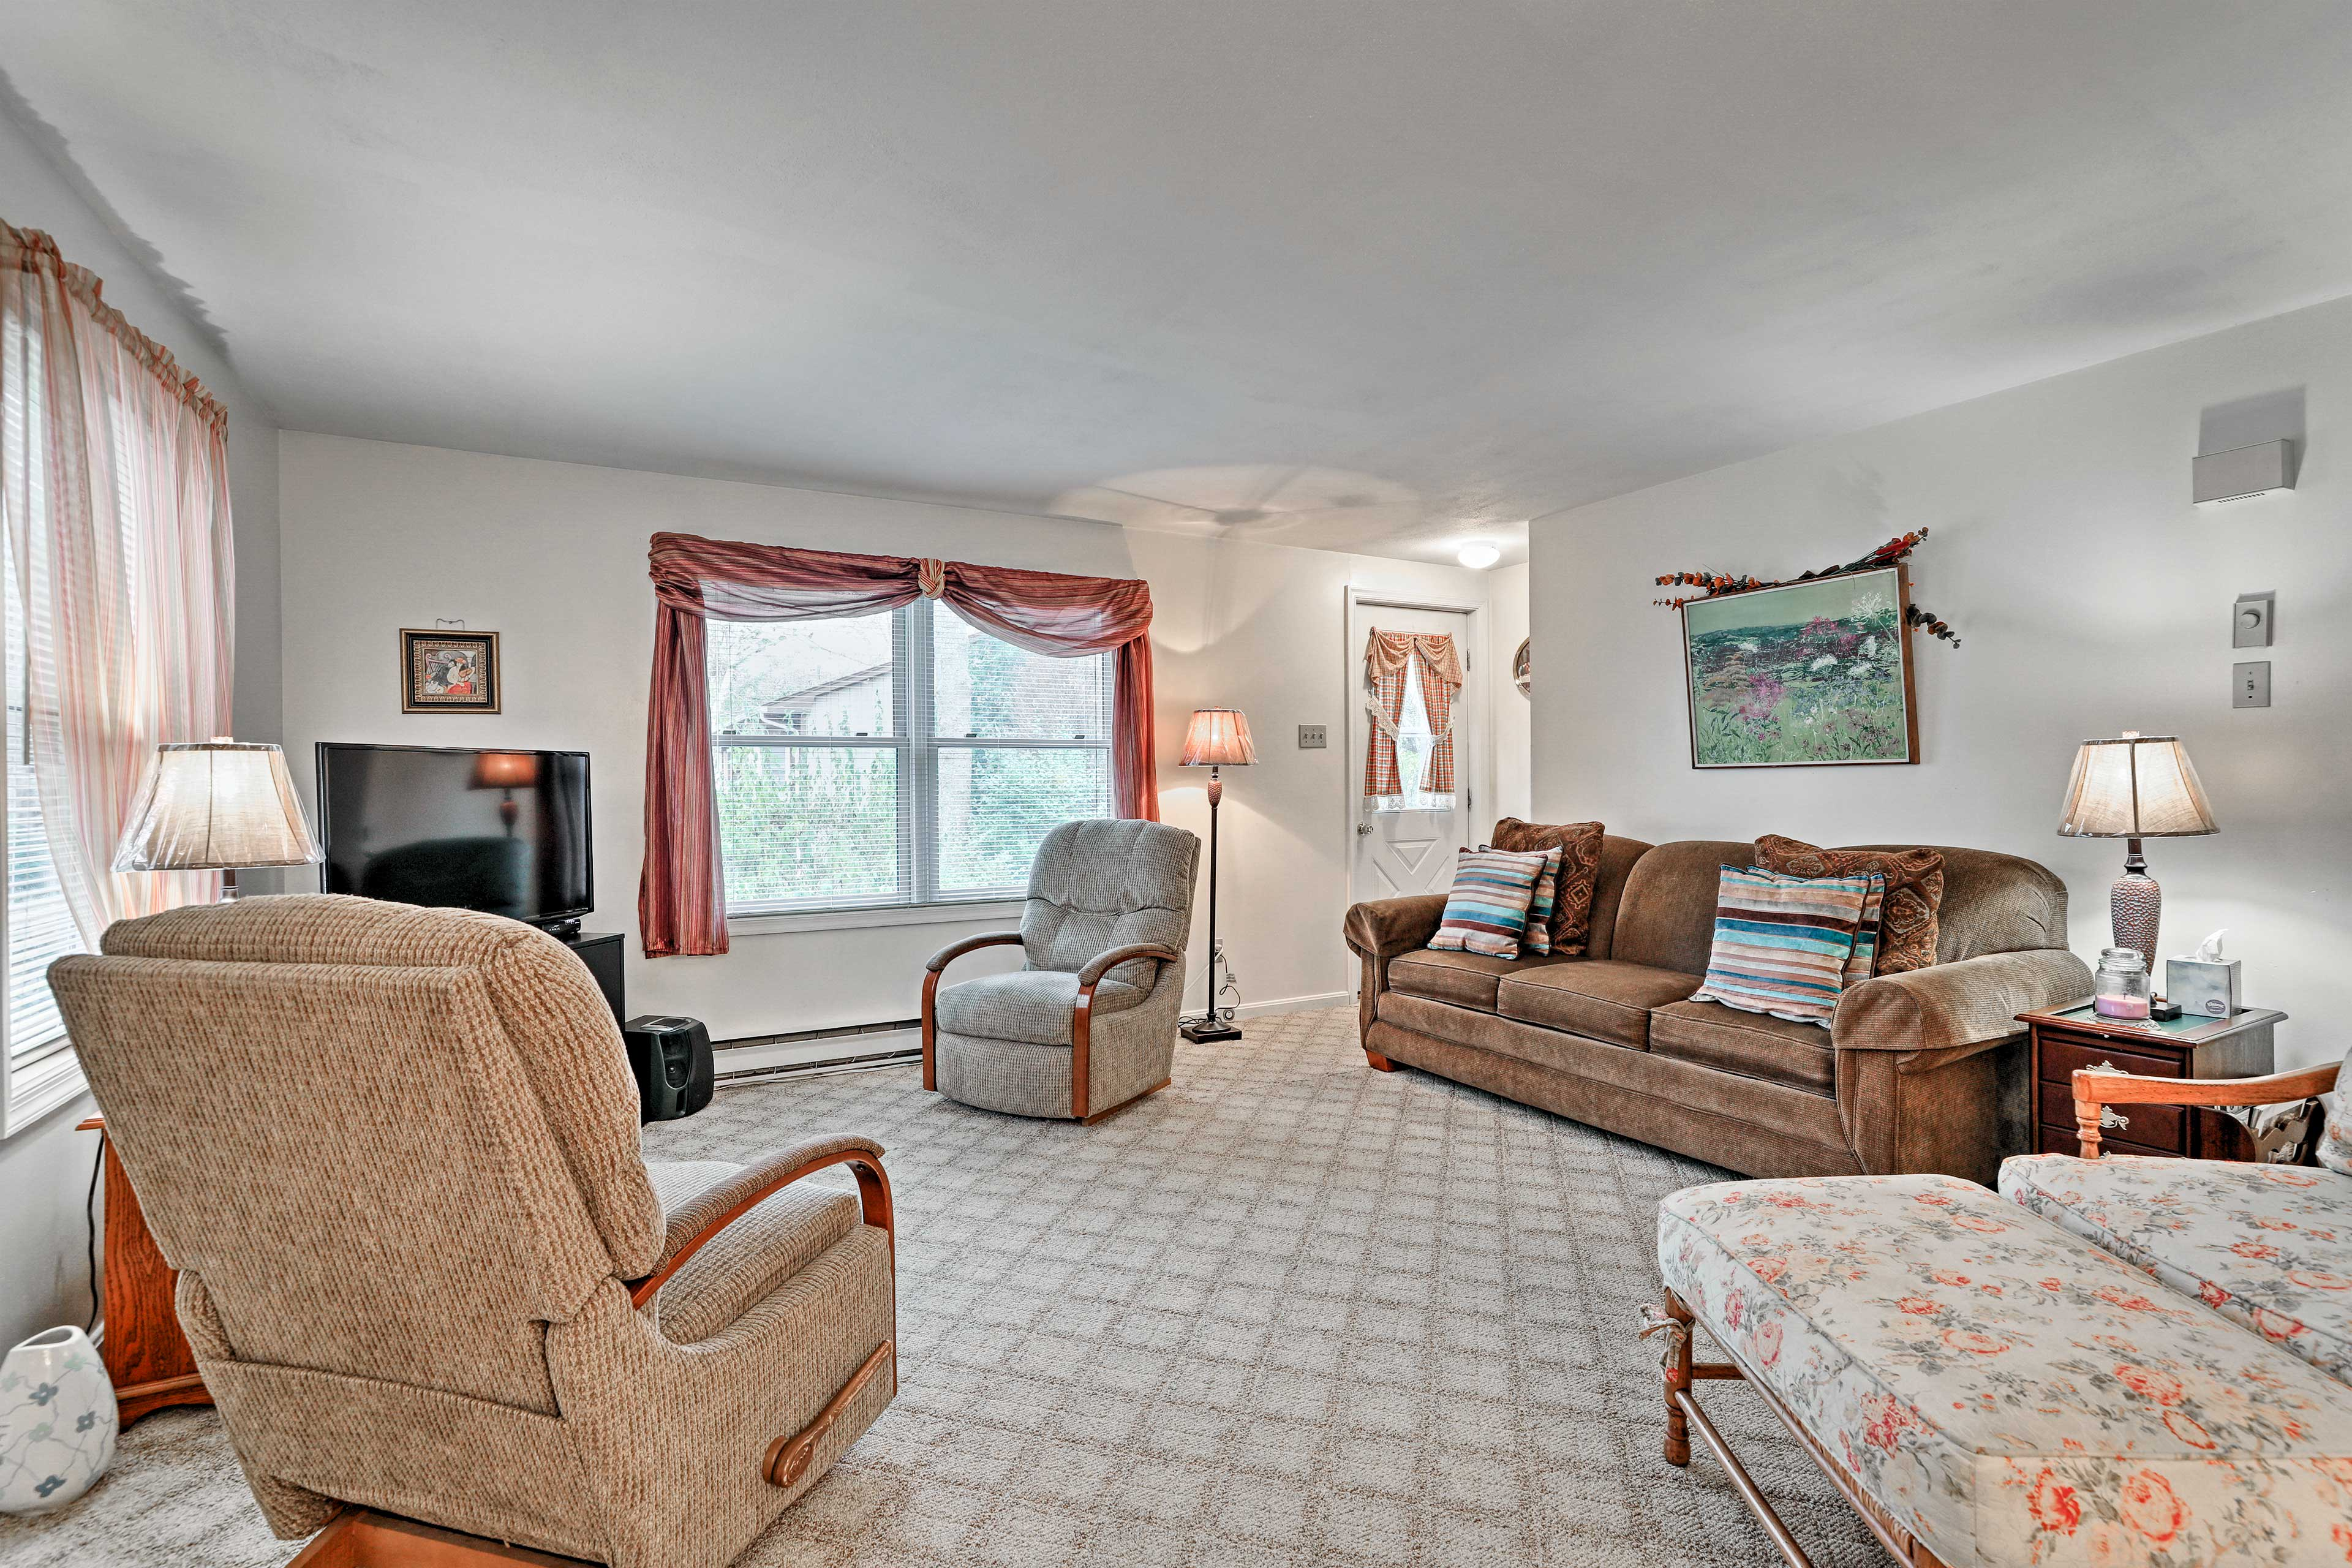 You'll find this cozy home nestled in a beautiful historic district.